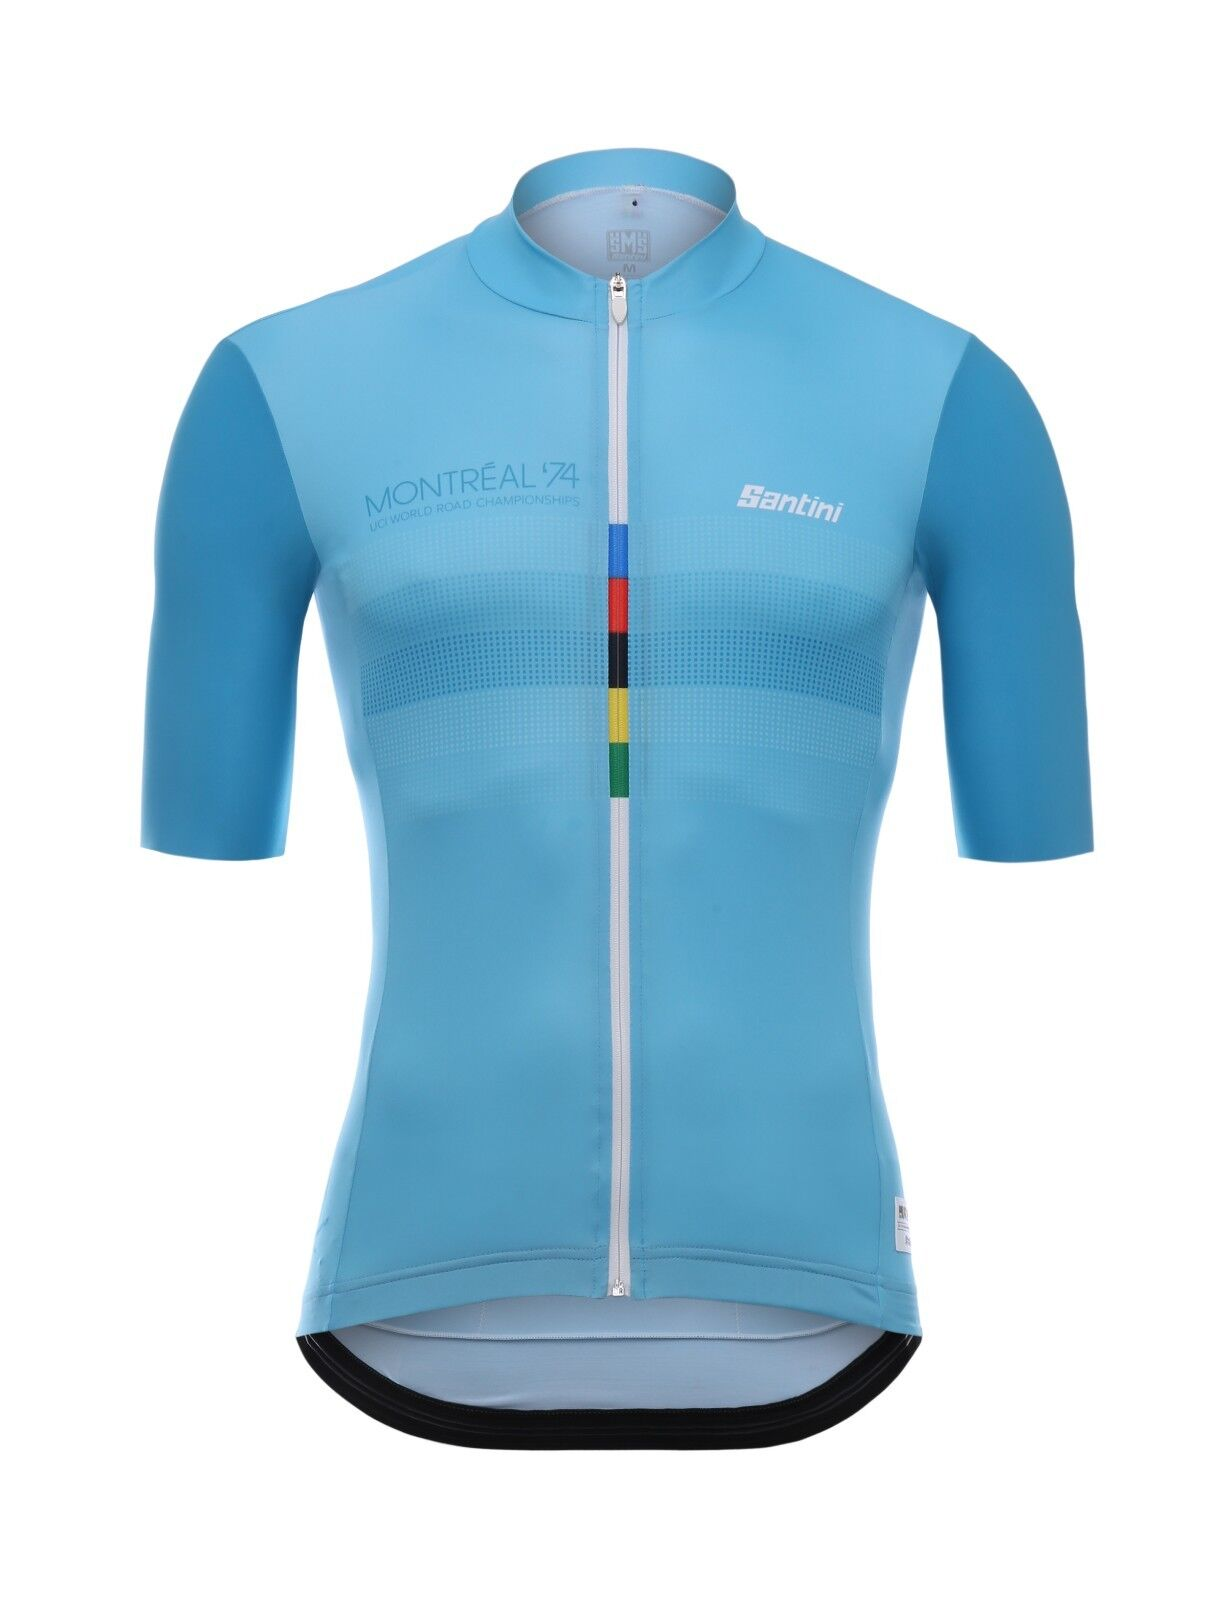 2018 UCI LE  CANNIBALE SKULL CYCLING JERSEY in bluee Made in  by Santini  all in high quality and low price